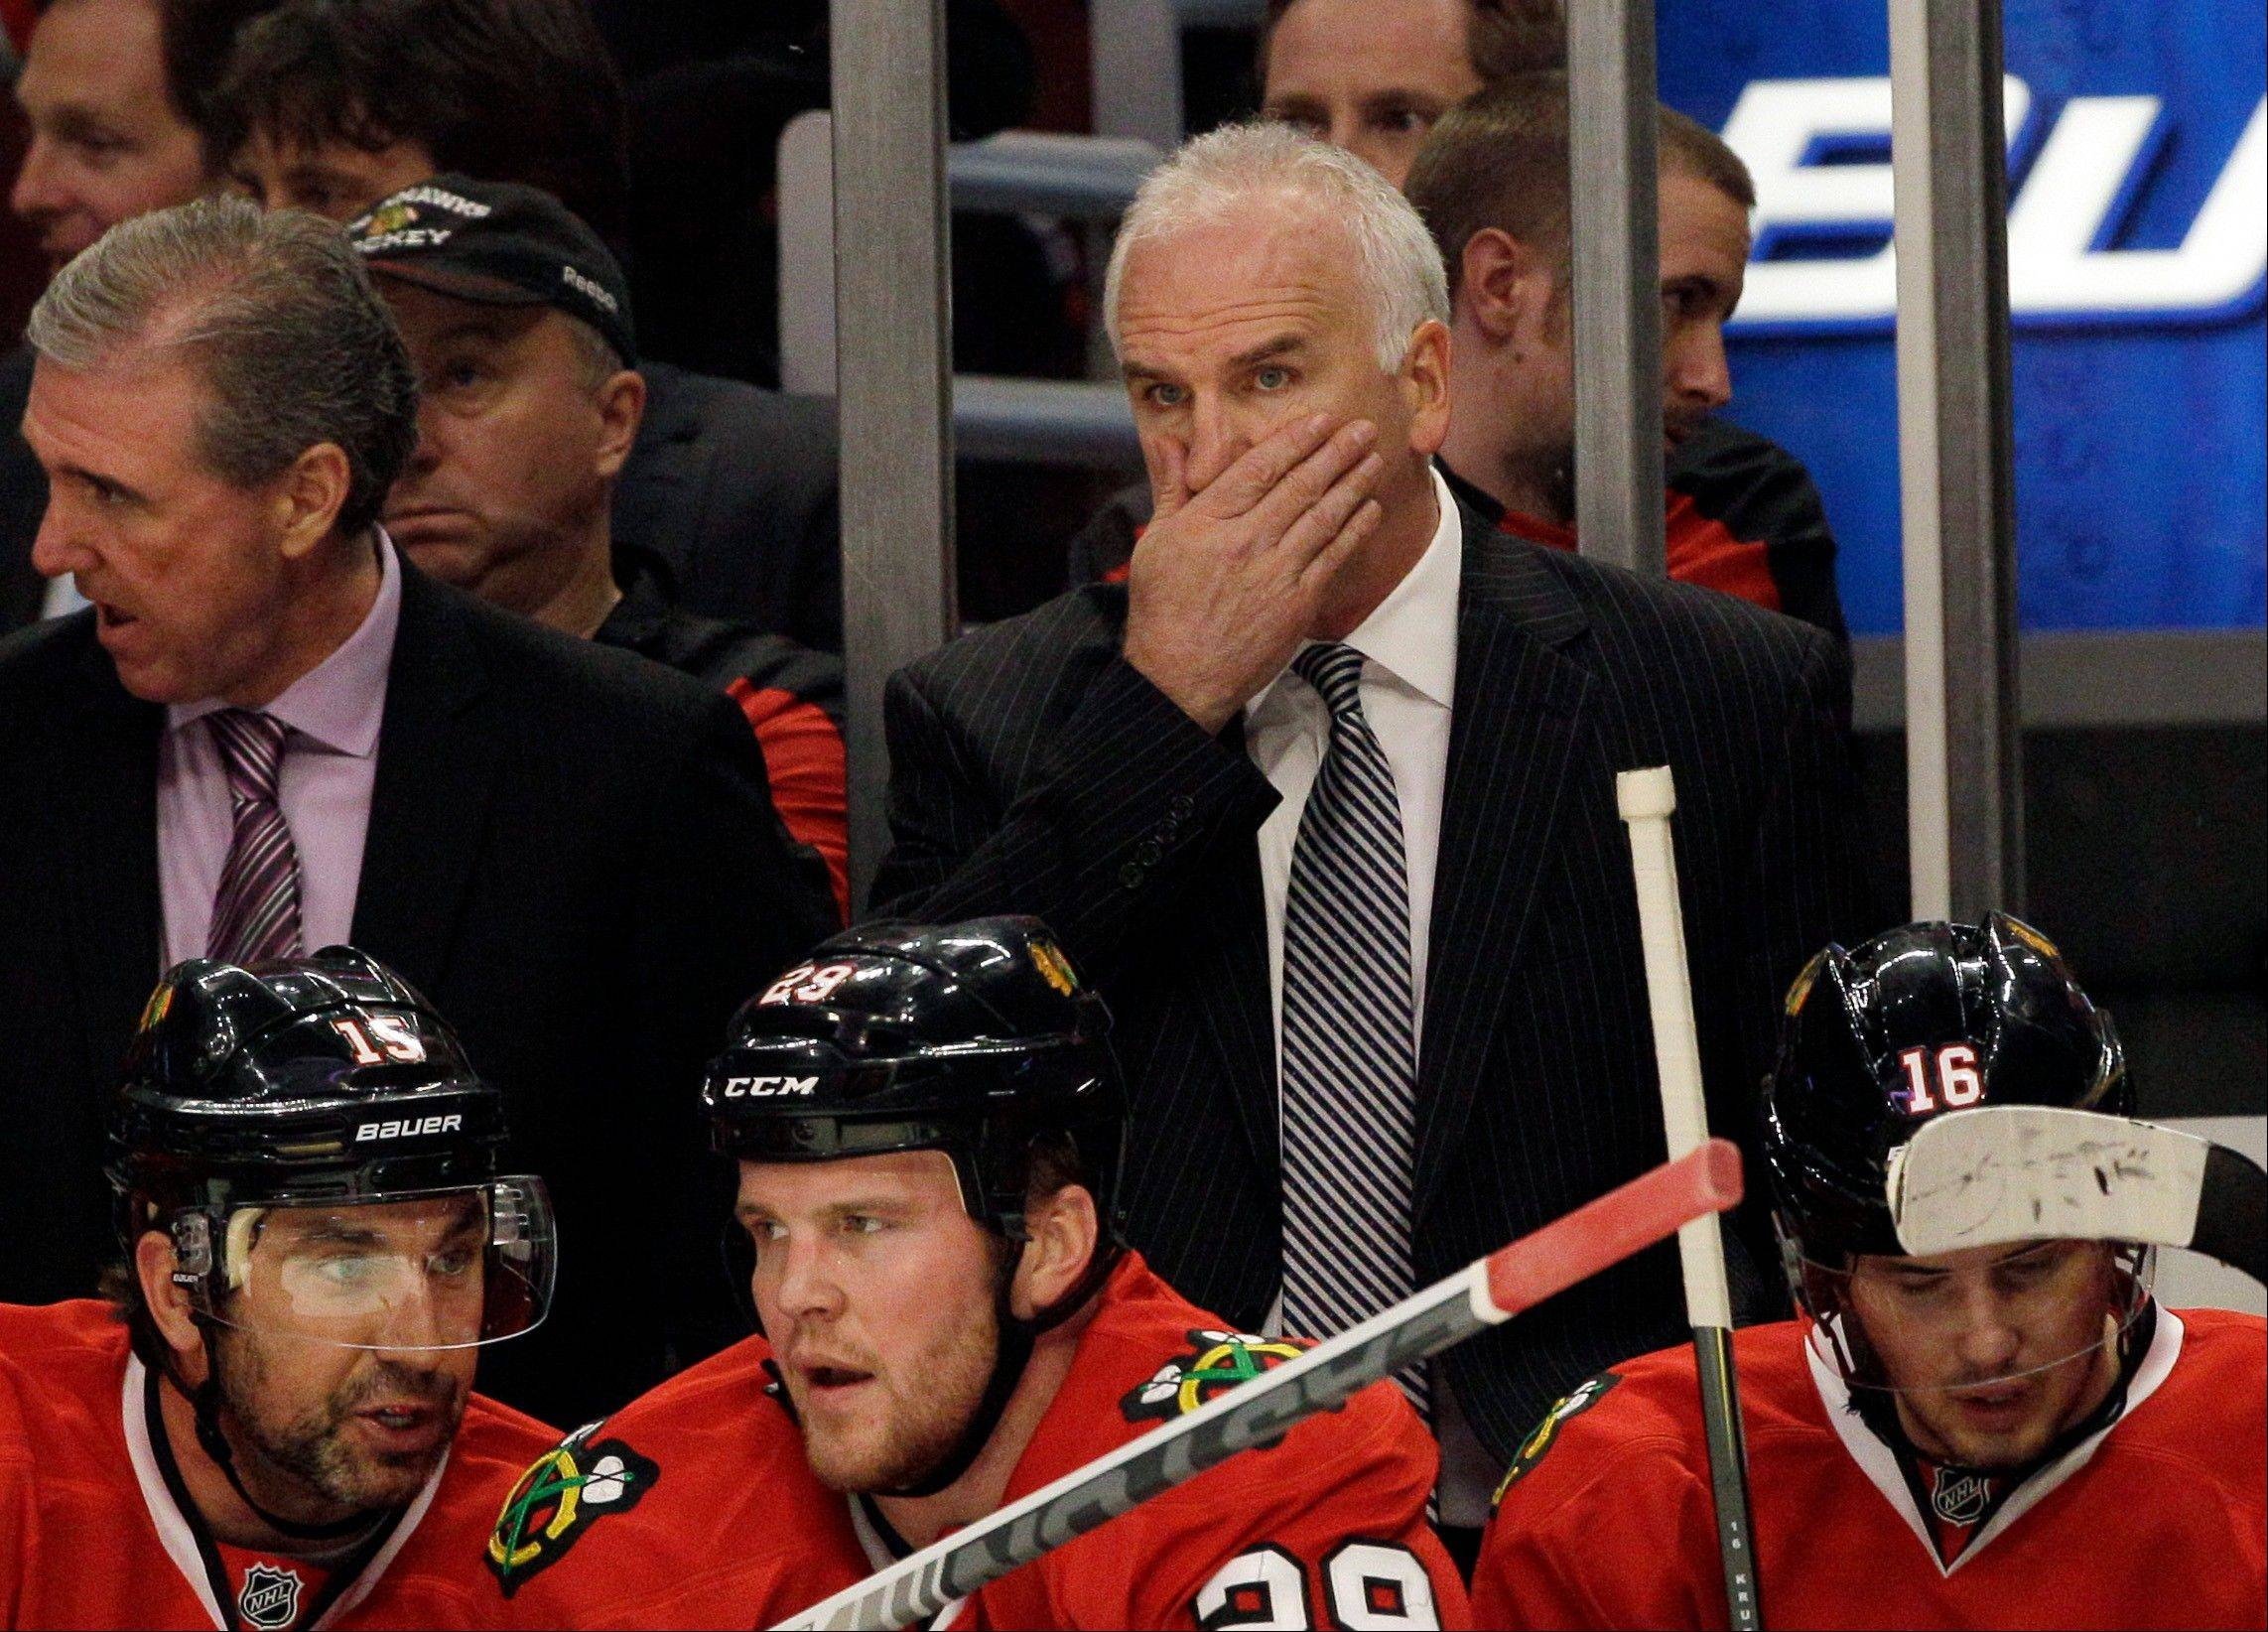 Blackhawks head coach Joel Quenneville said Wednesday that it wasn't more physical play that kept the Blackhawks from advancing in the playoffs. He likes the puck-possession play of his defenseman. Quenneville and general manager Stan Bowman expect to have some good discussions about the makeup of the team this summer.